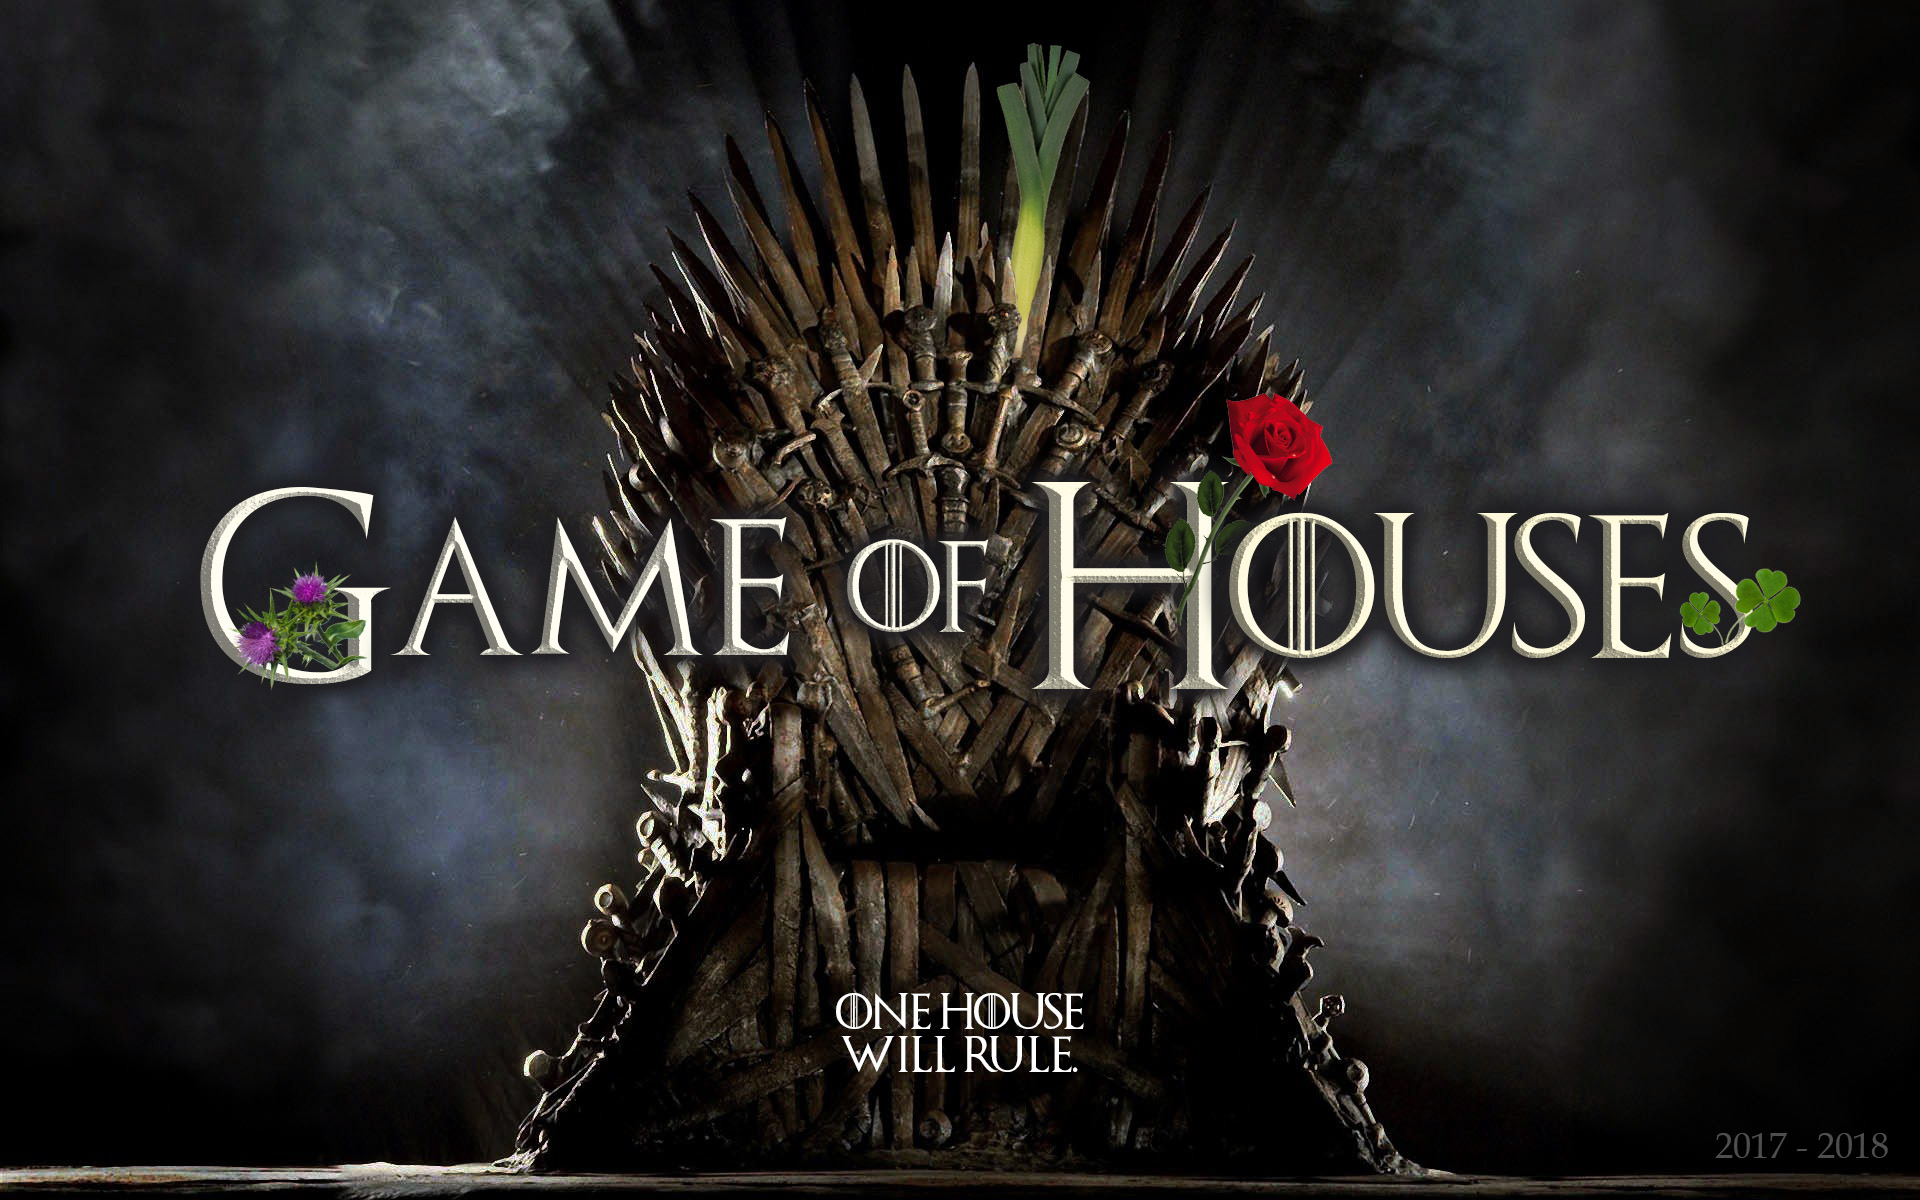 Game of Houses